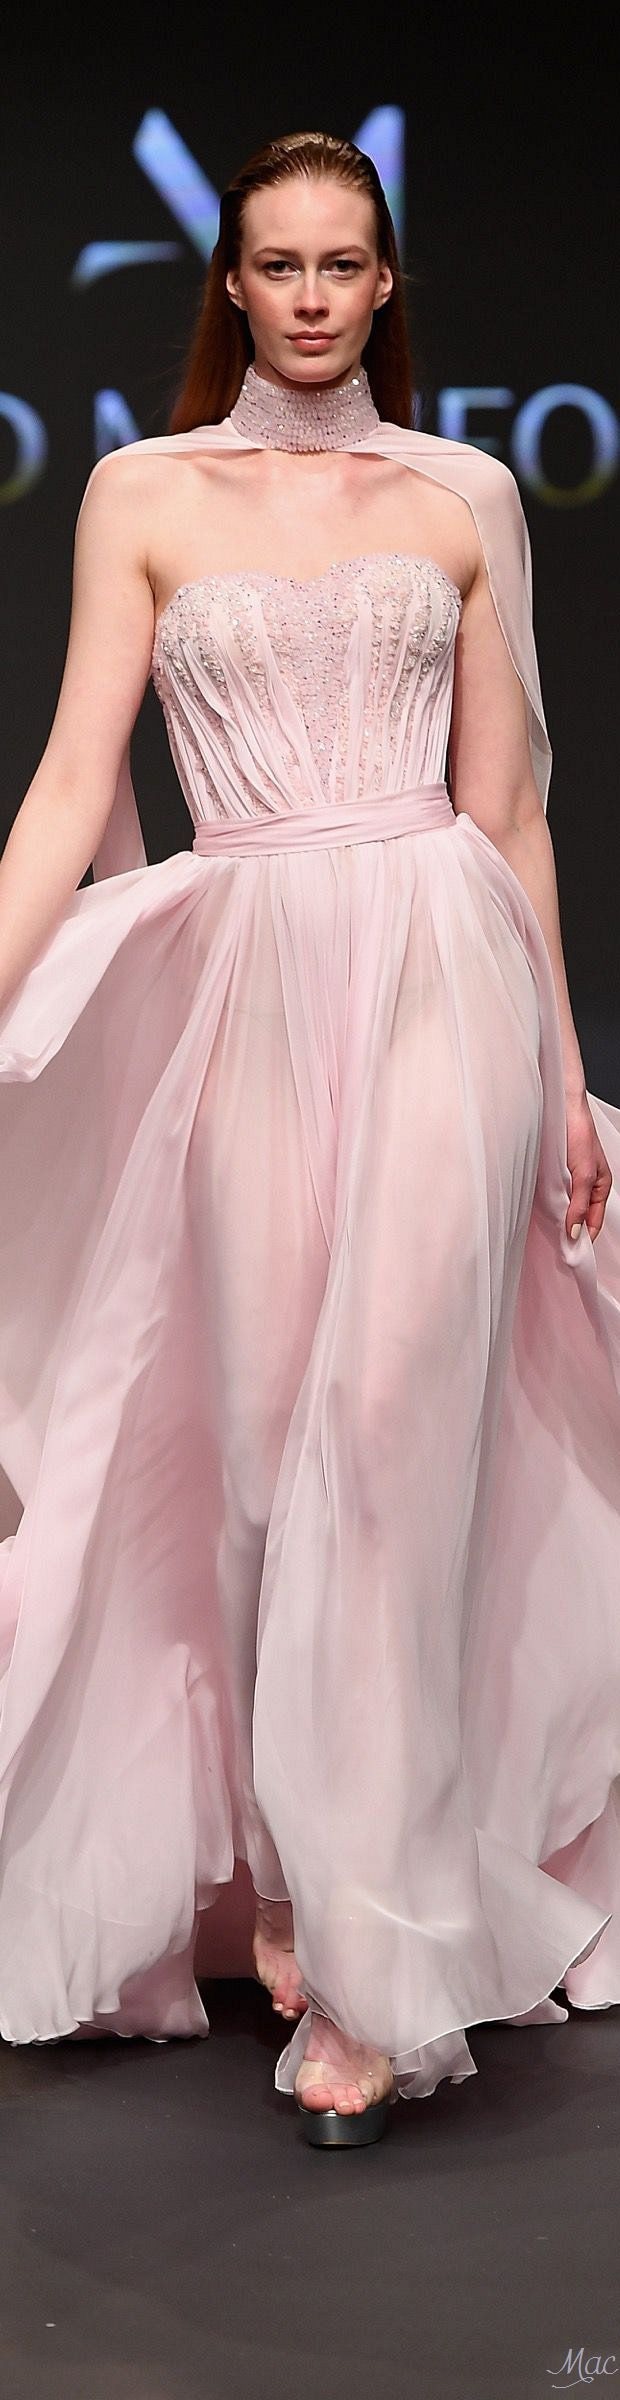 Spring 2017 Haute Couture Abed Mahfouz